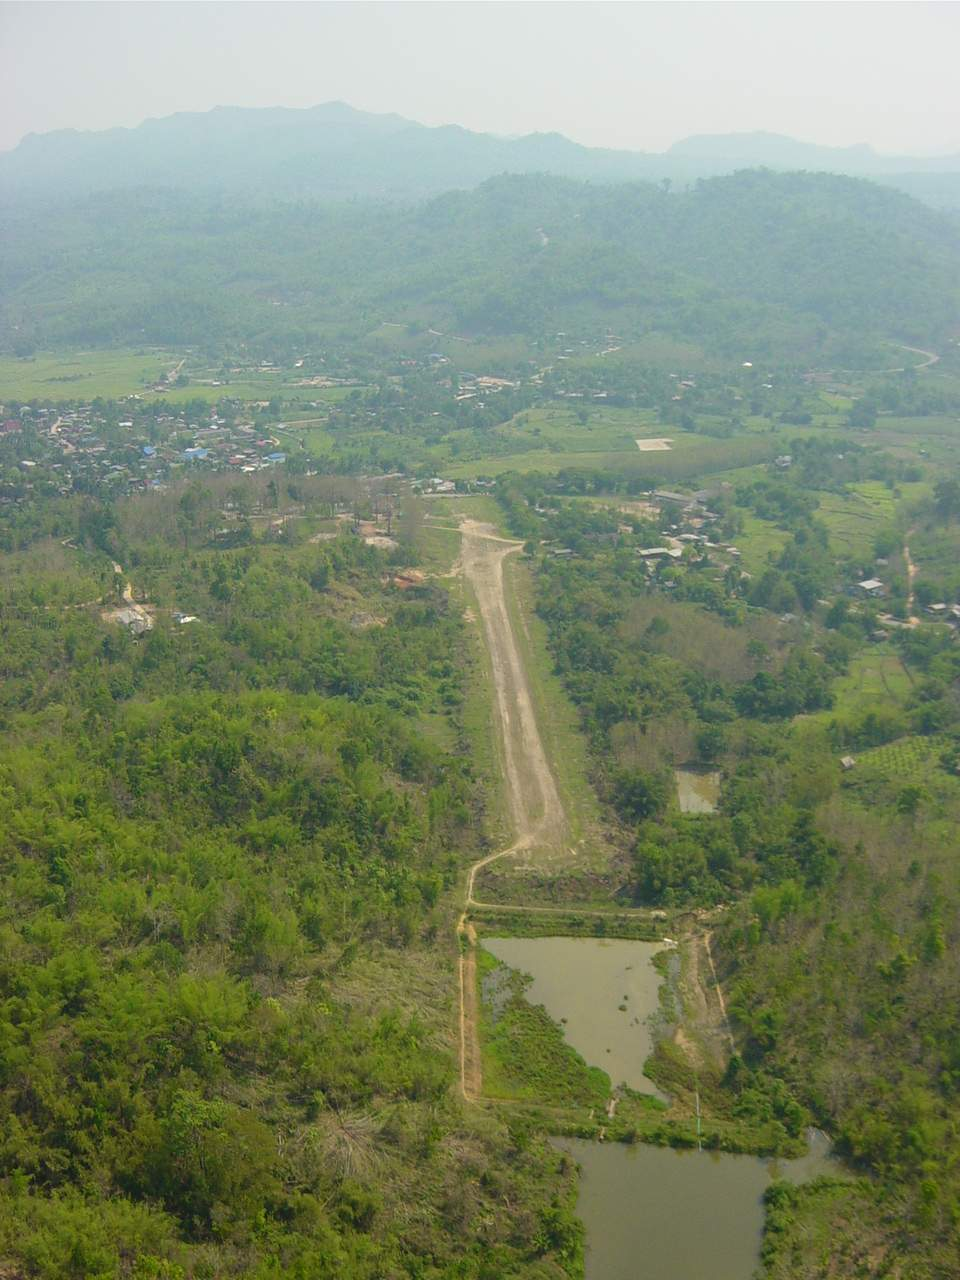 Umphang Runway 20 - for TAKEOFF (away from the mountain)